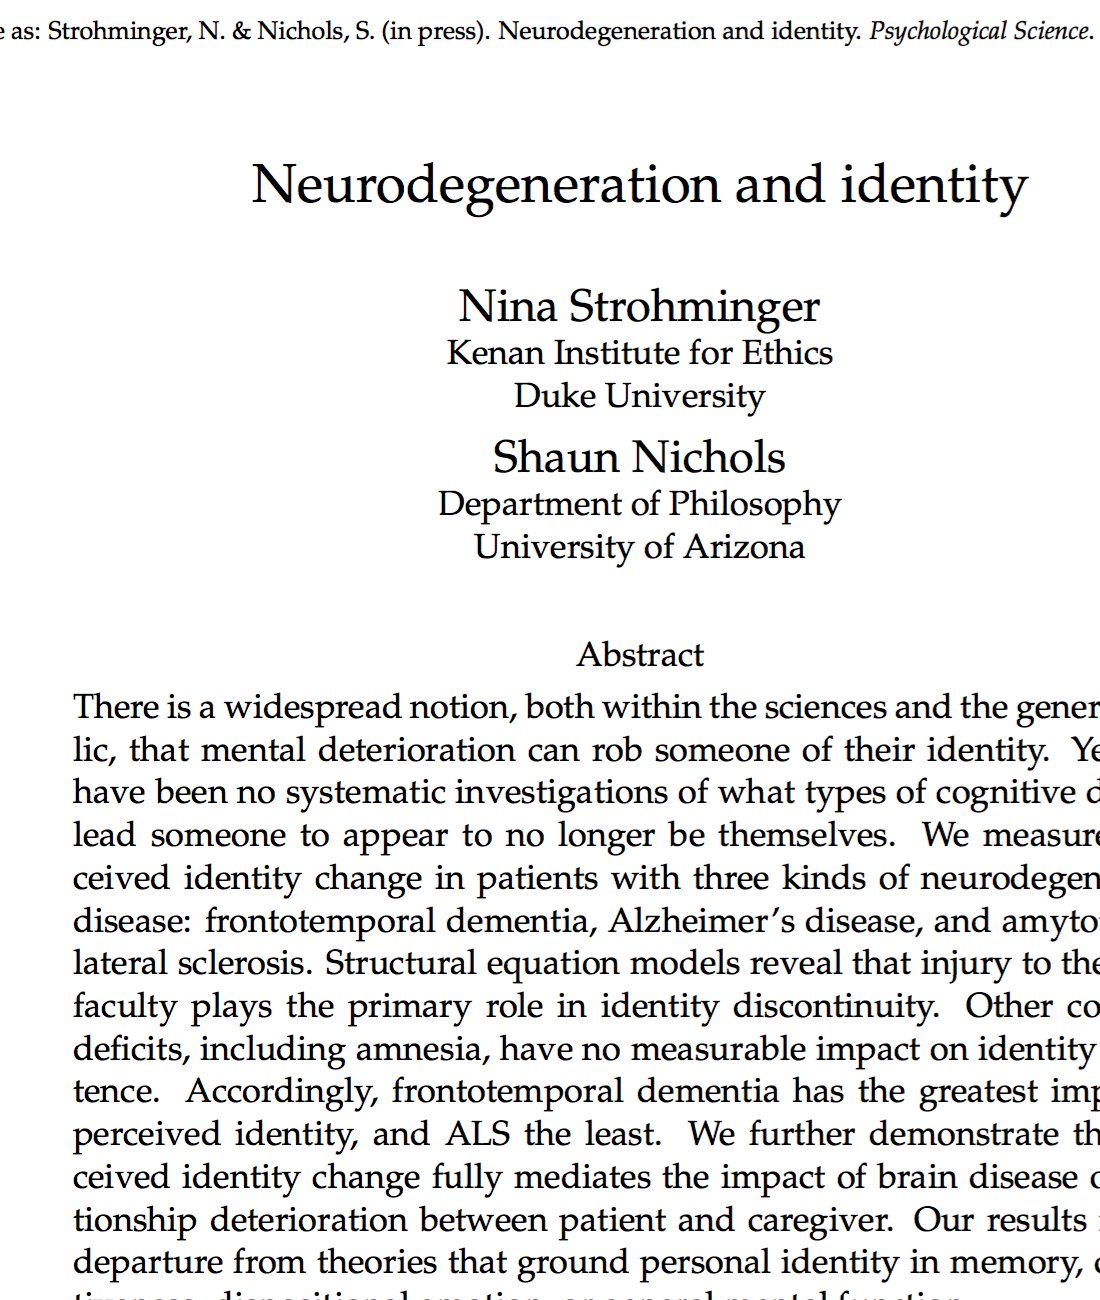 Strohminger N. an  d Nichols, N. (2015).  Neurodegeneration and Identity. Psychological Science, 26, 1468-1479.